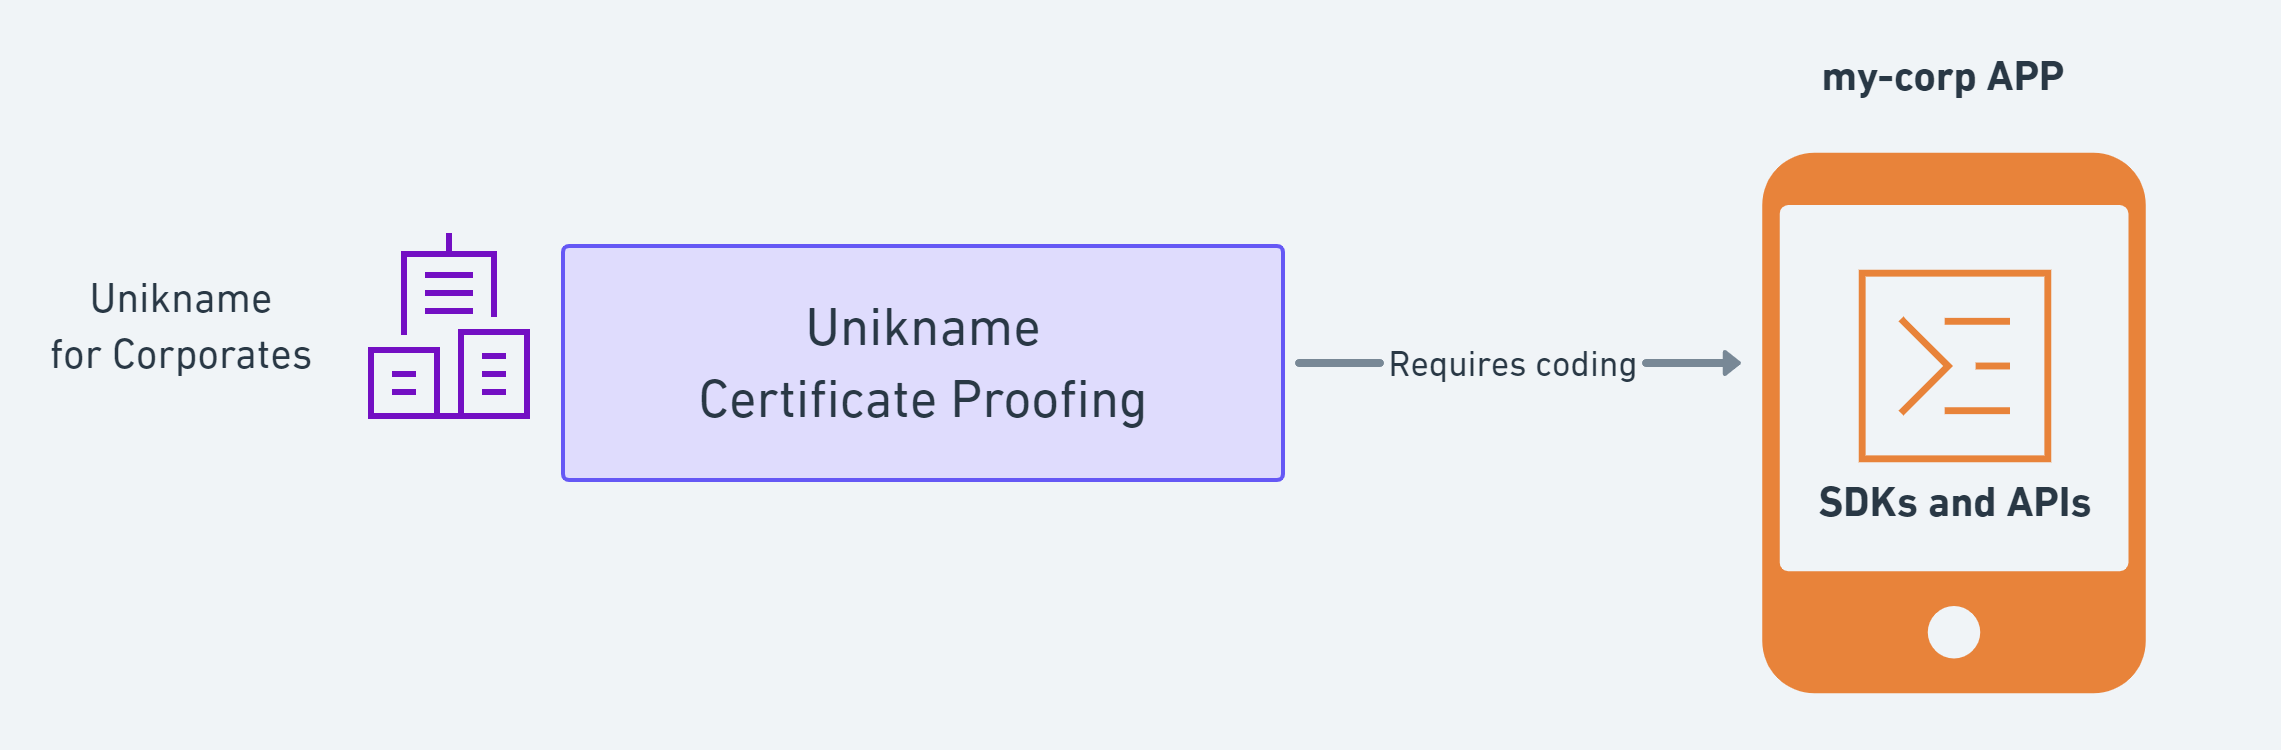 unikname_certificate_proofing